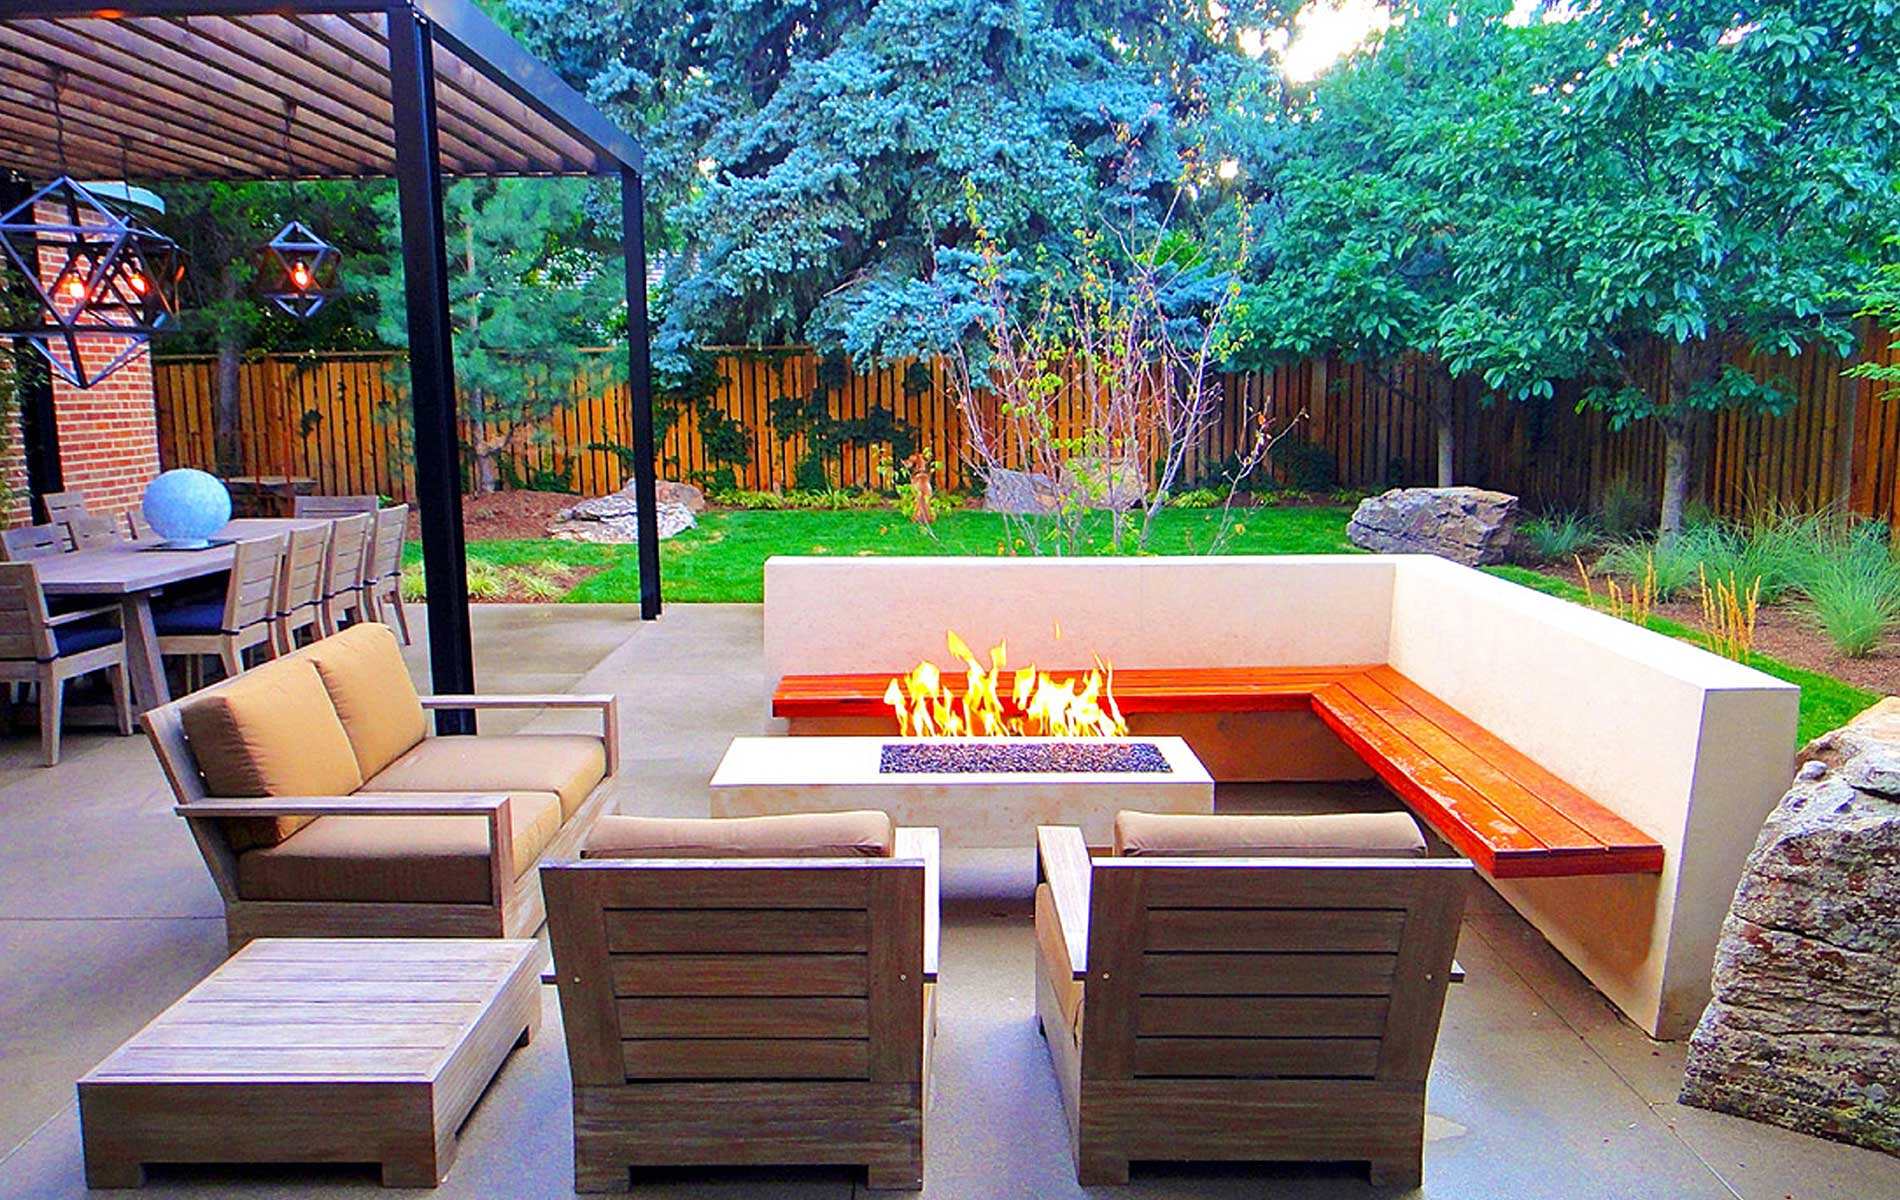 Sleek Modern Outdoor Living Space in Park Hill - Mile High ... on Garden Living Space id=22114